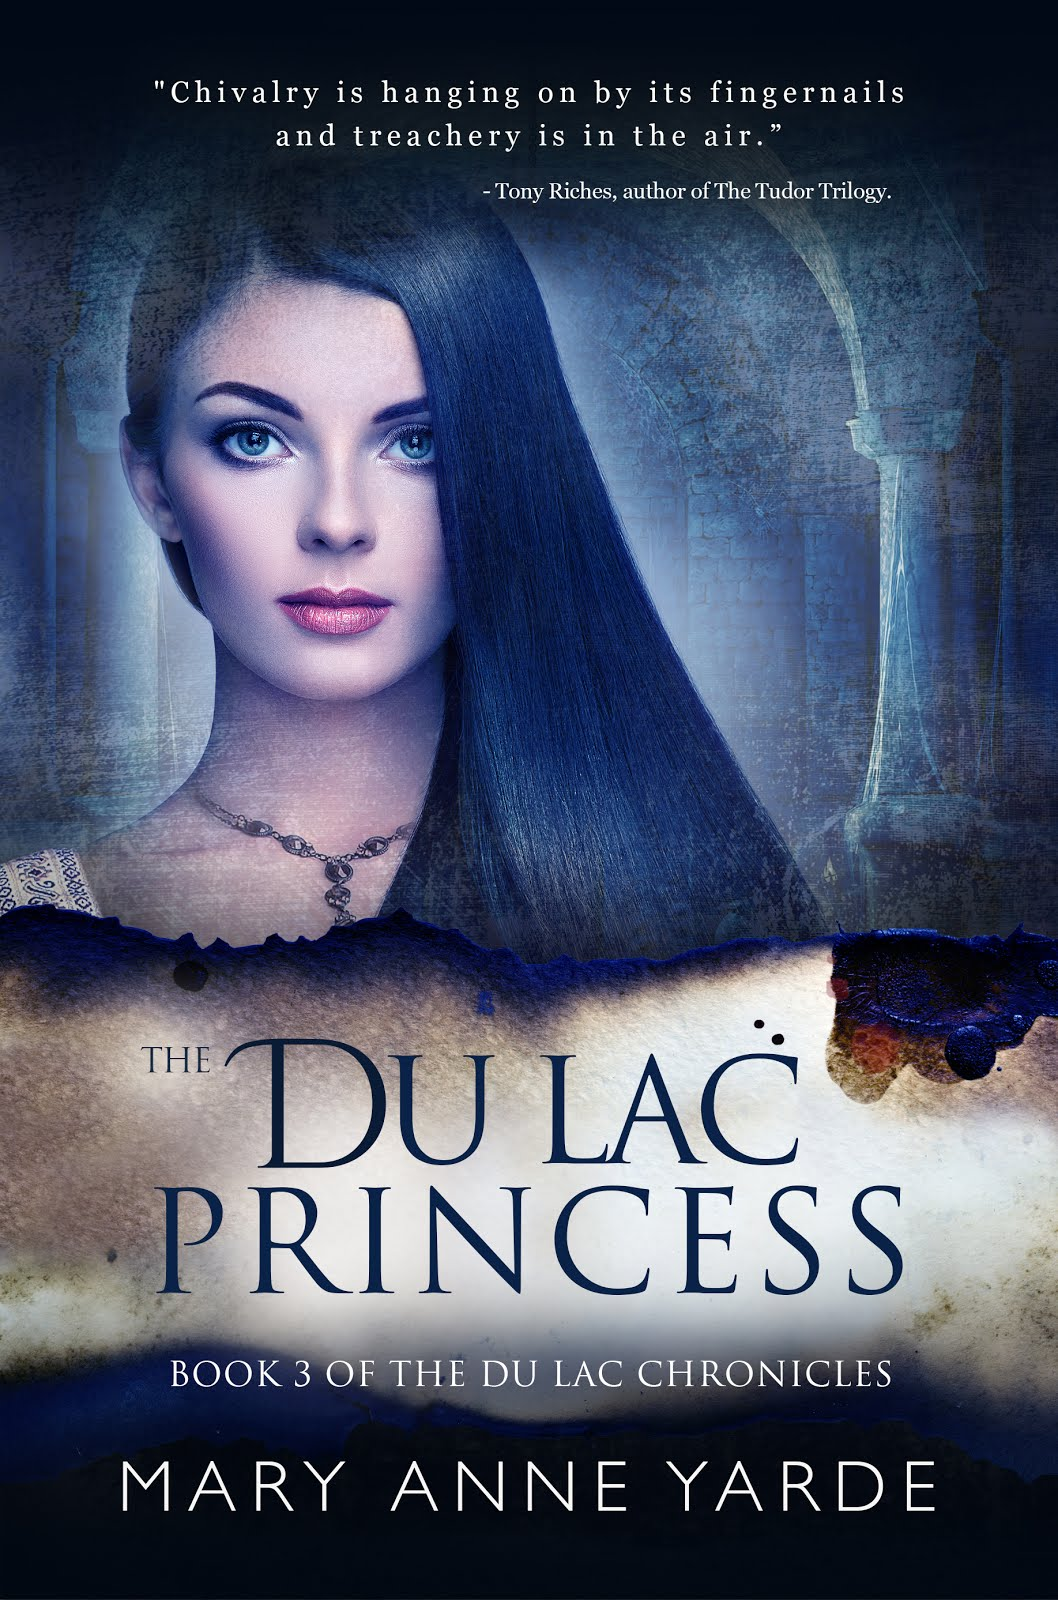 The Du Lac Princess: Book 3